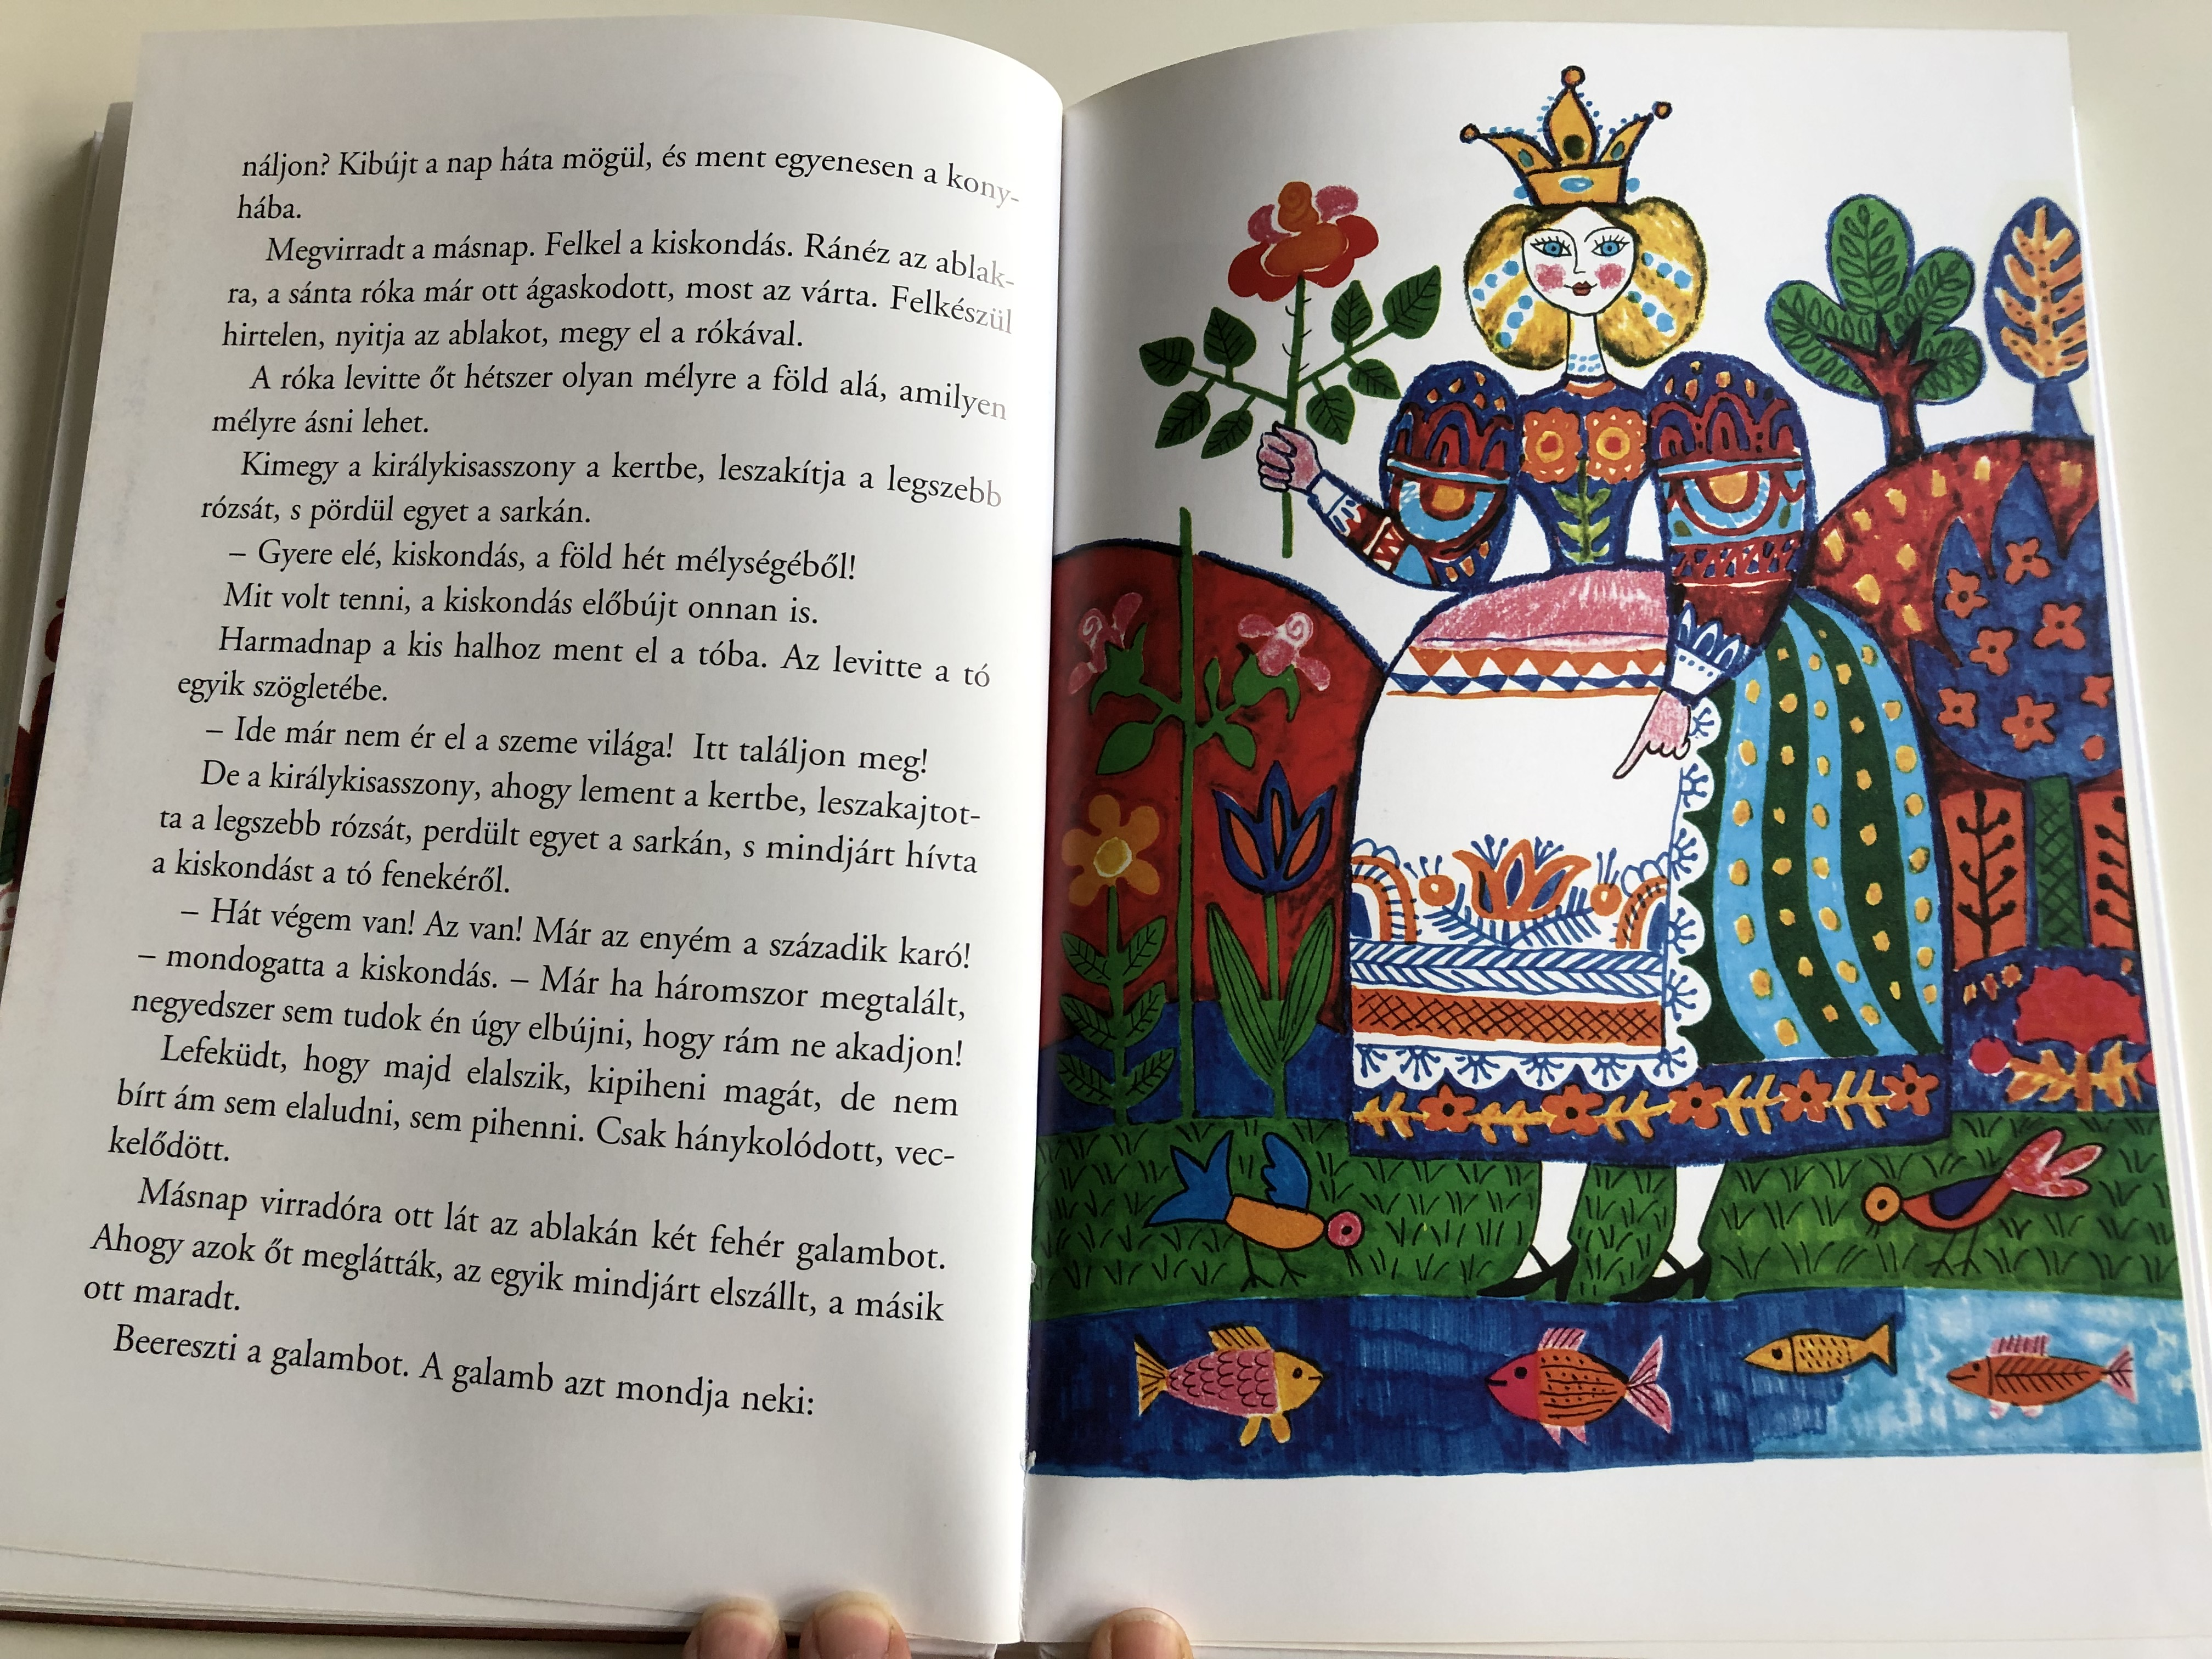 a-kiskond-s-by-illy-s-gyula-hungarian-folk-tale-for-children-illustrations-by-reich-k-roly-m-ra-k-nyvkiad-2011-6-.jpg